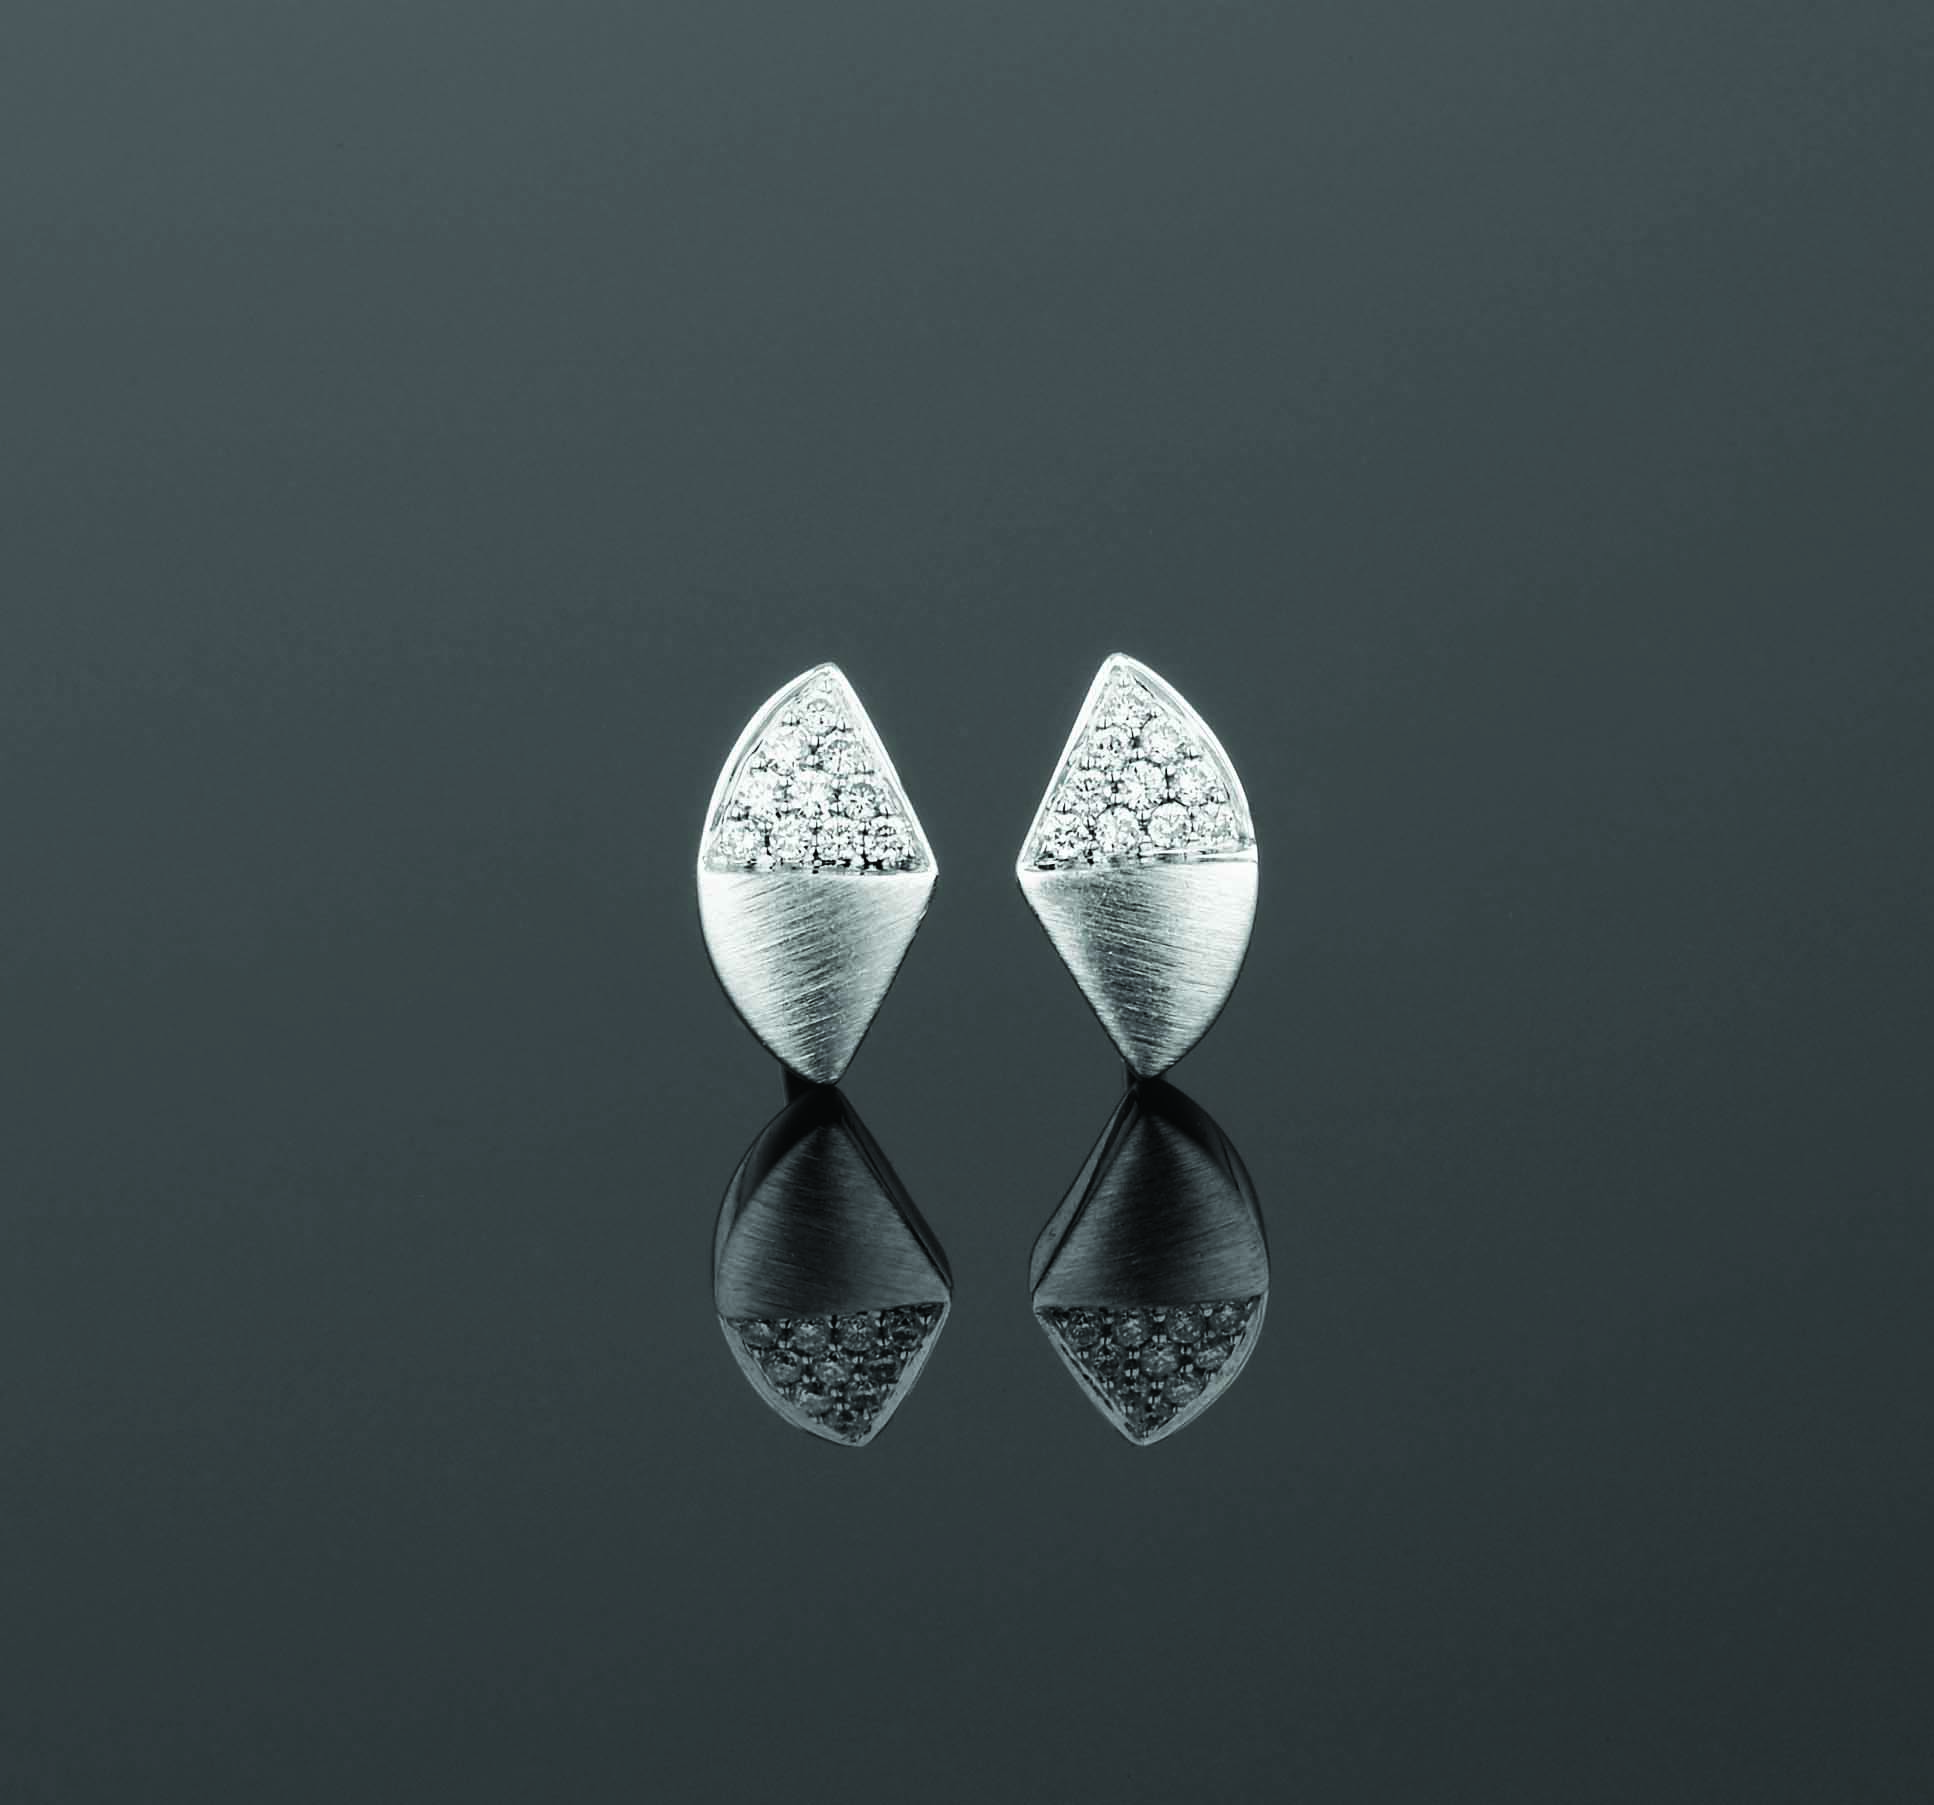 210133-Diamond Apus Earrings-900x840.jpg